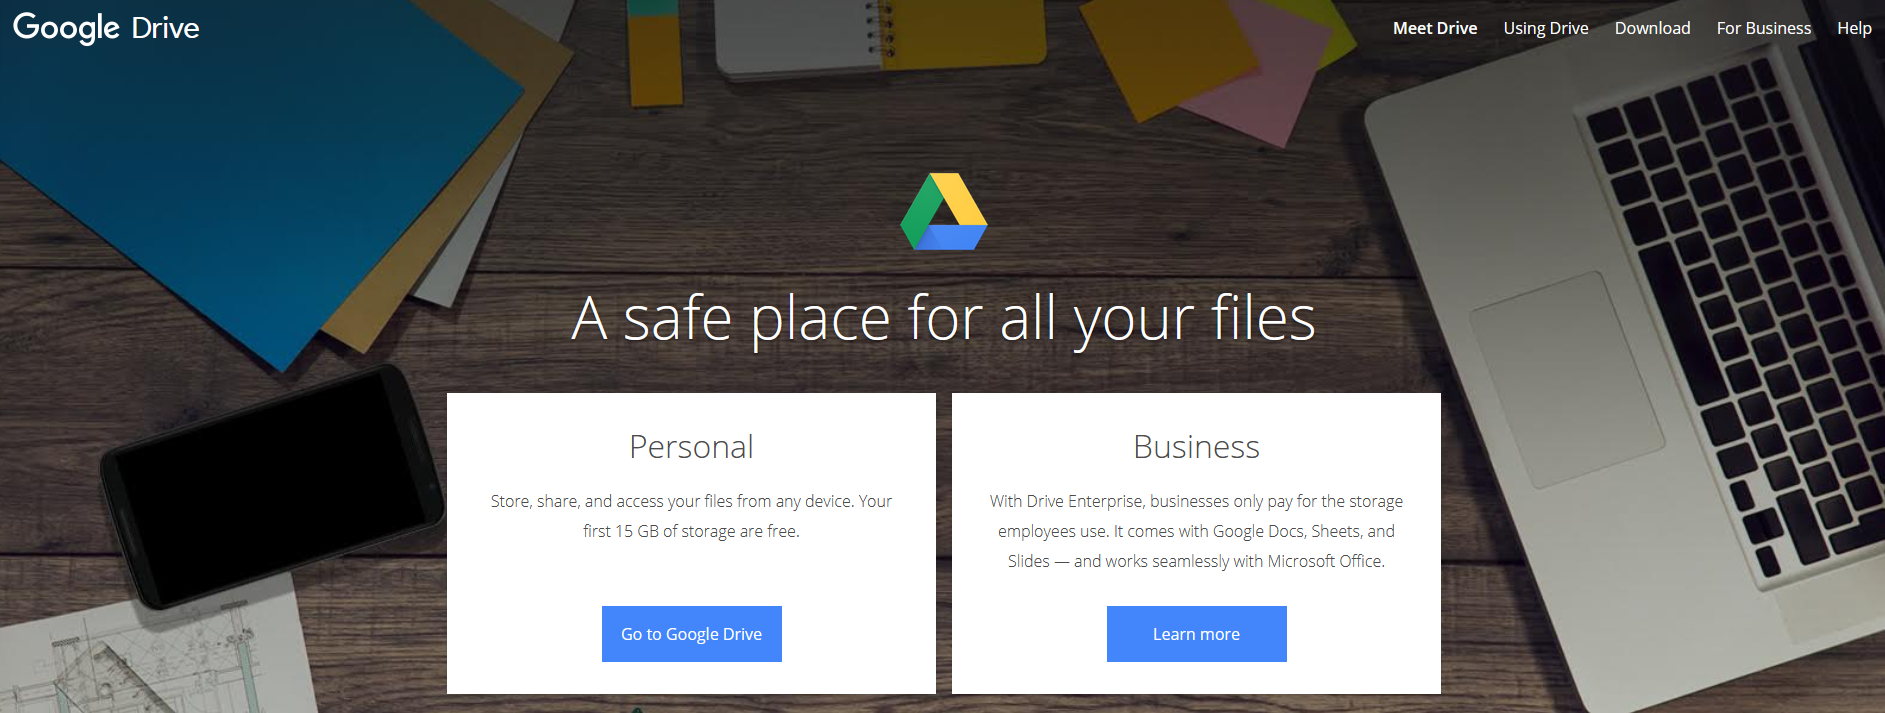 The Google Drive website.